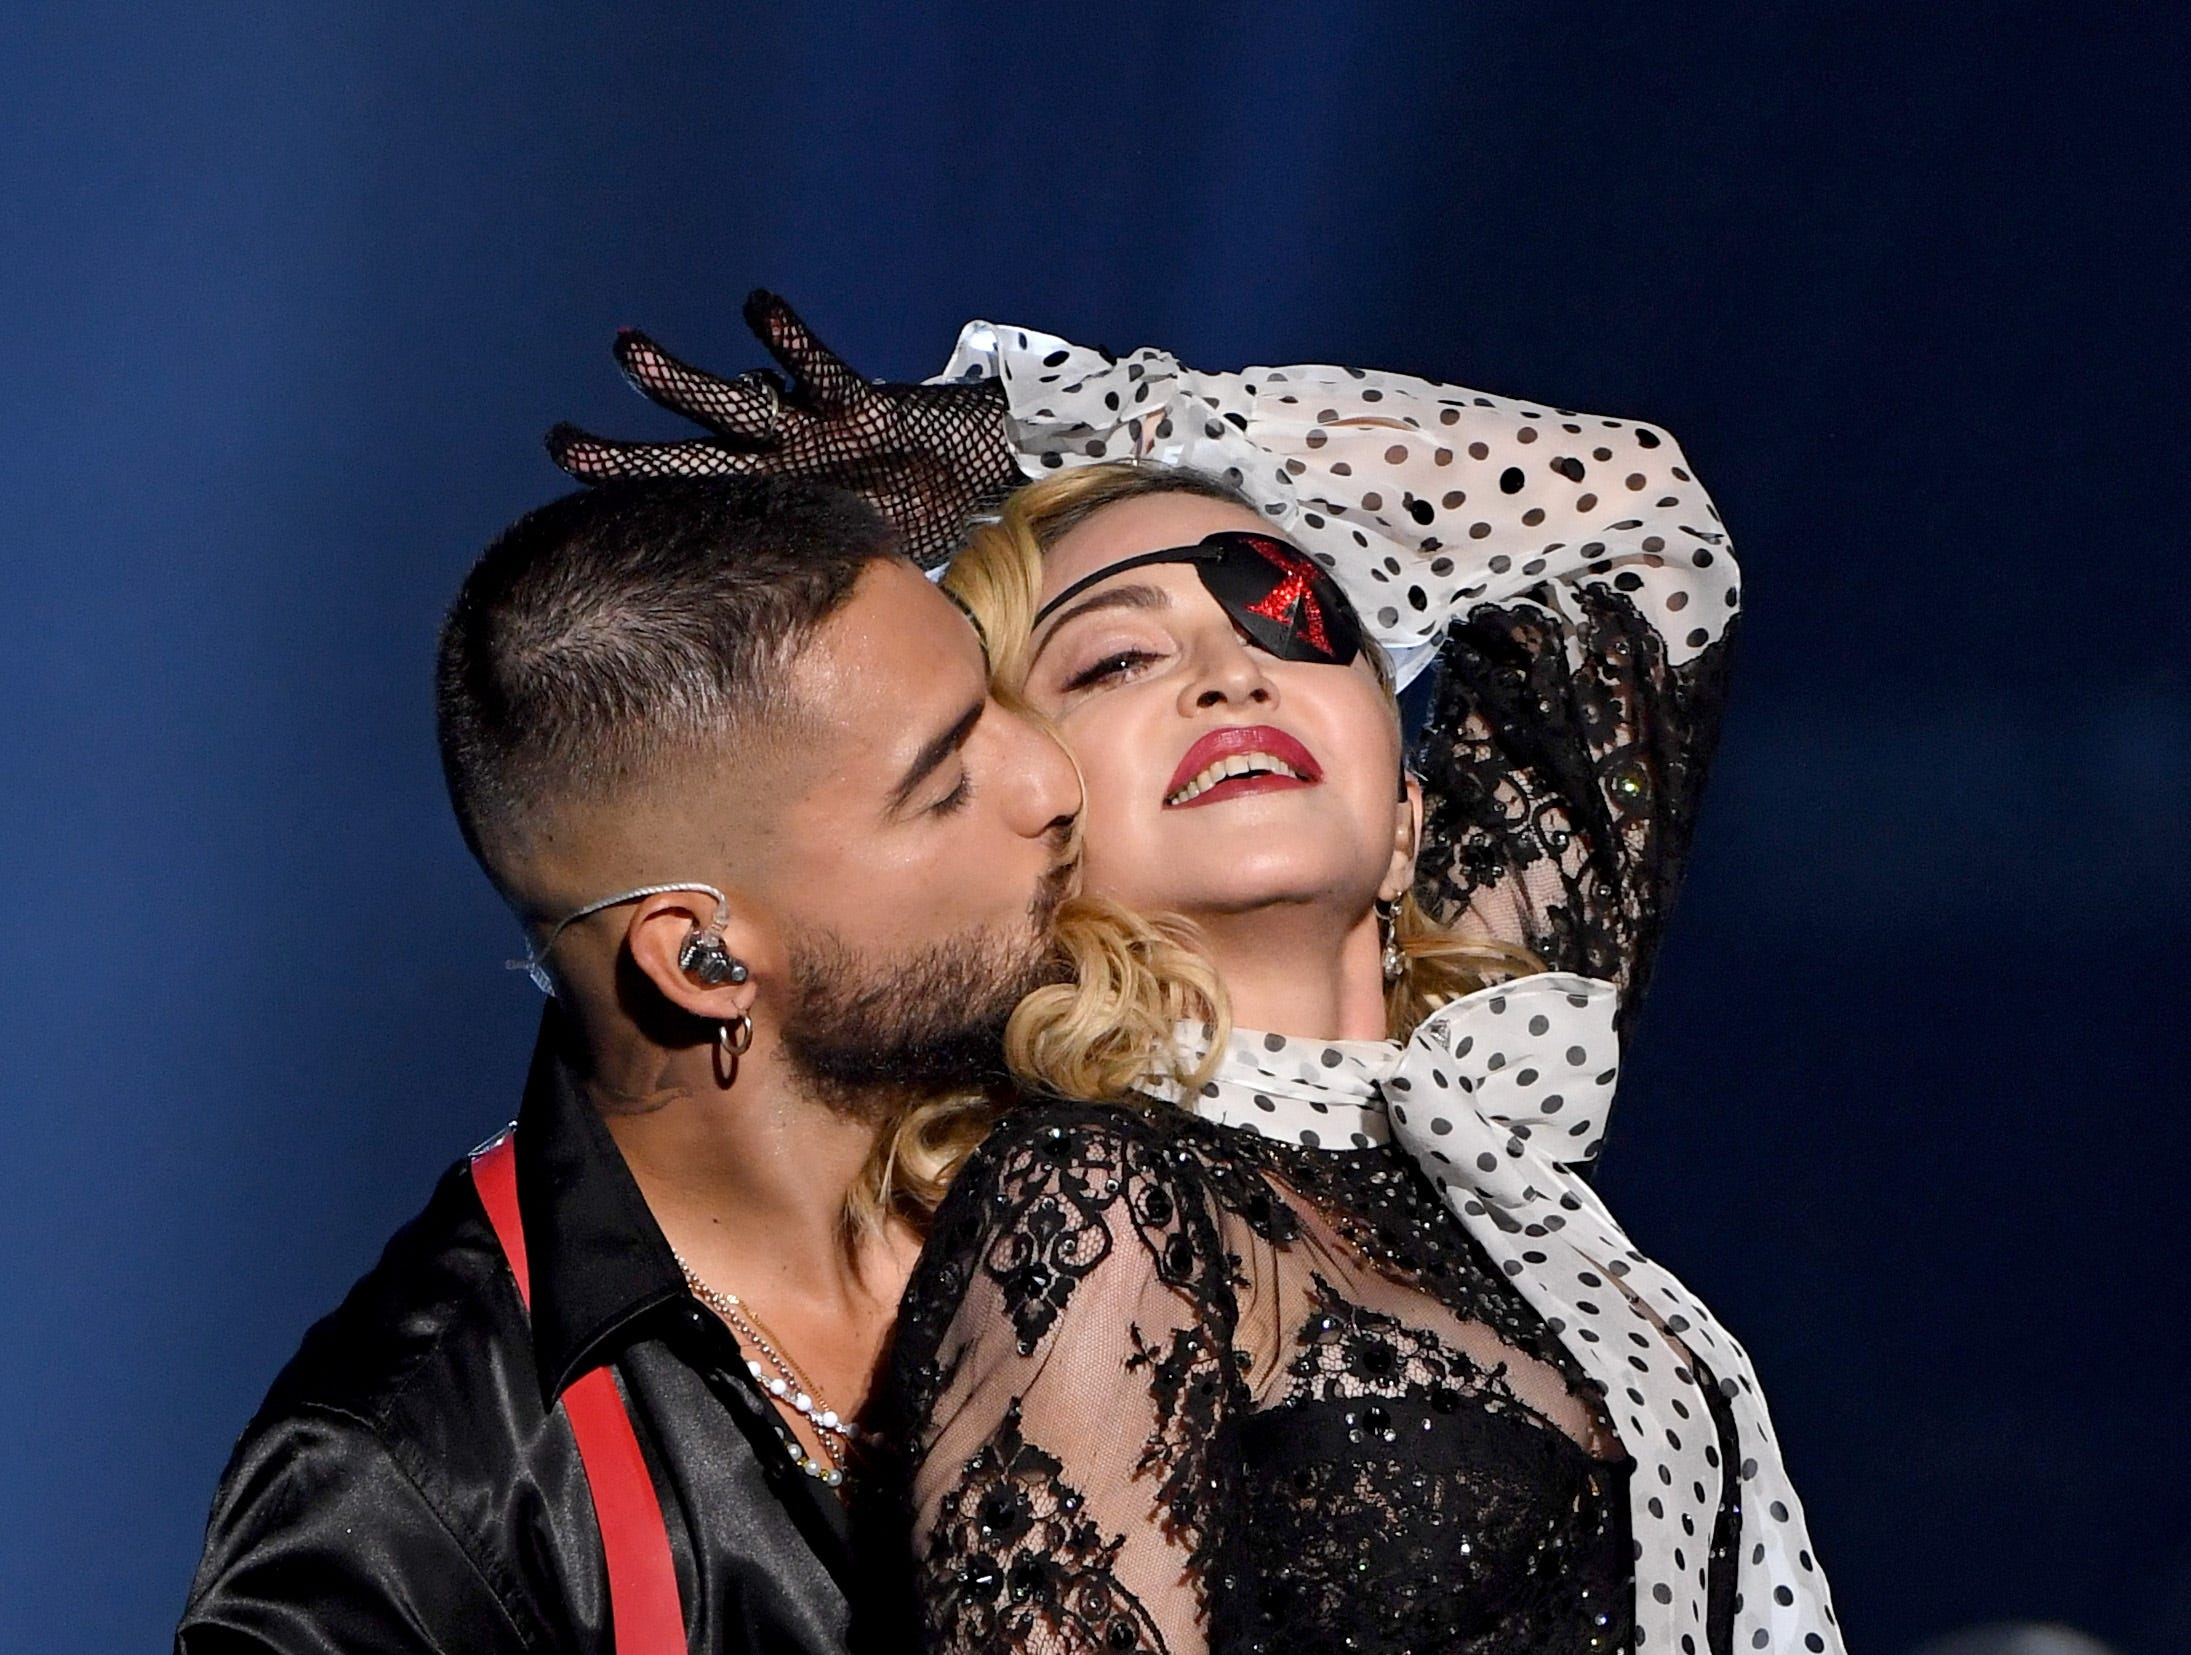 (L-R) Maluma and Madonna perform onstage during the 2019 Billboard Music Awards at MGM Grand Garden Arena on May 1, 2019 in Las Vegas, Nevada.